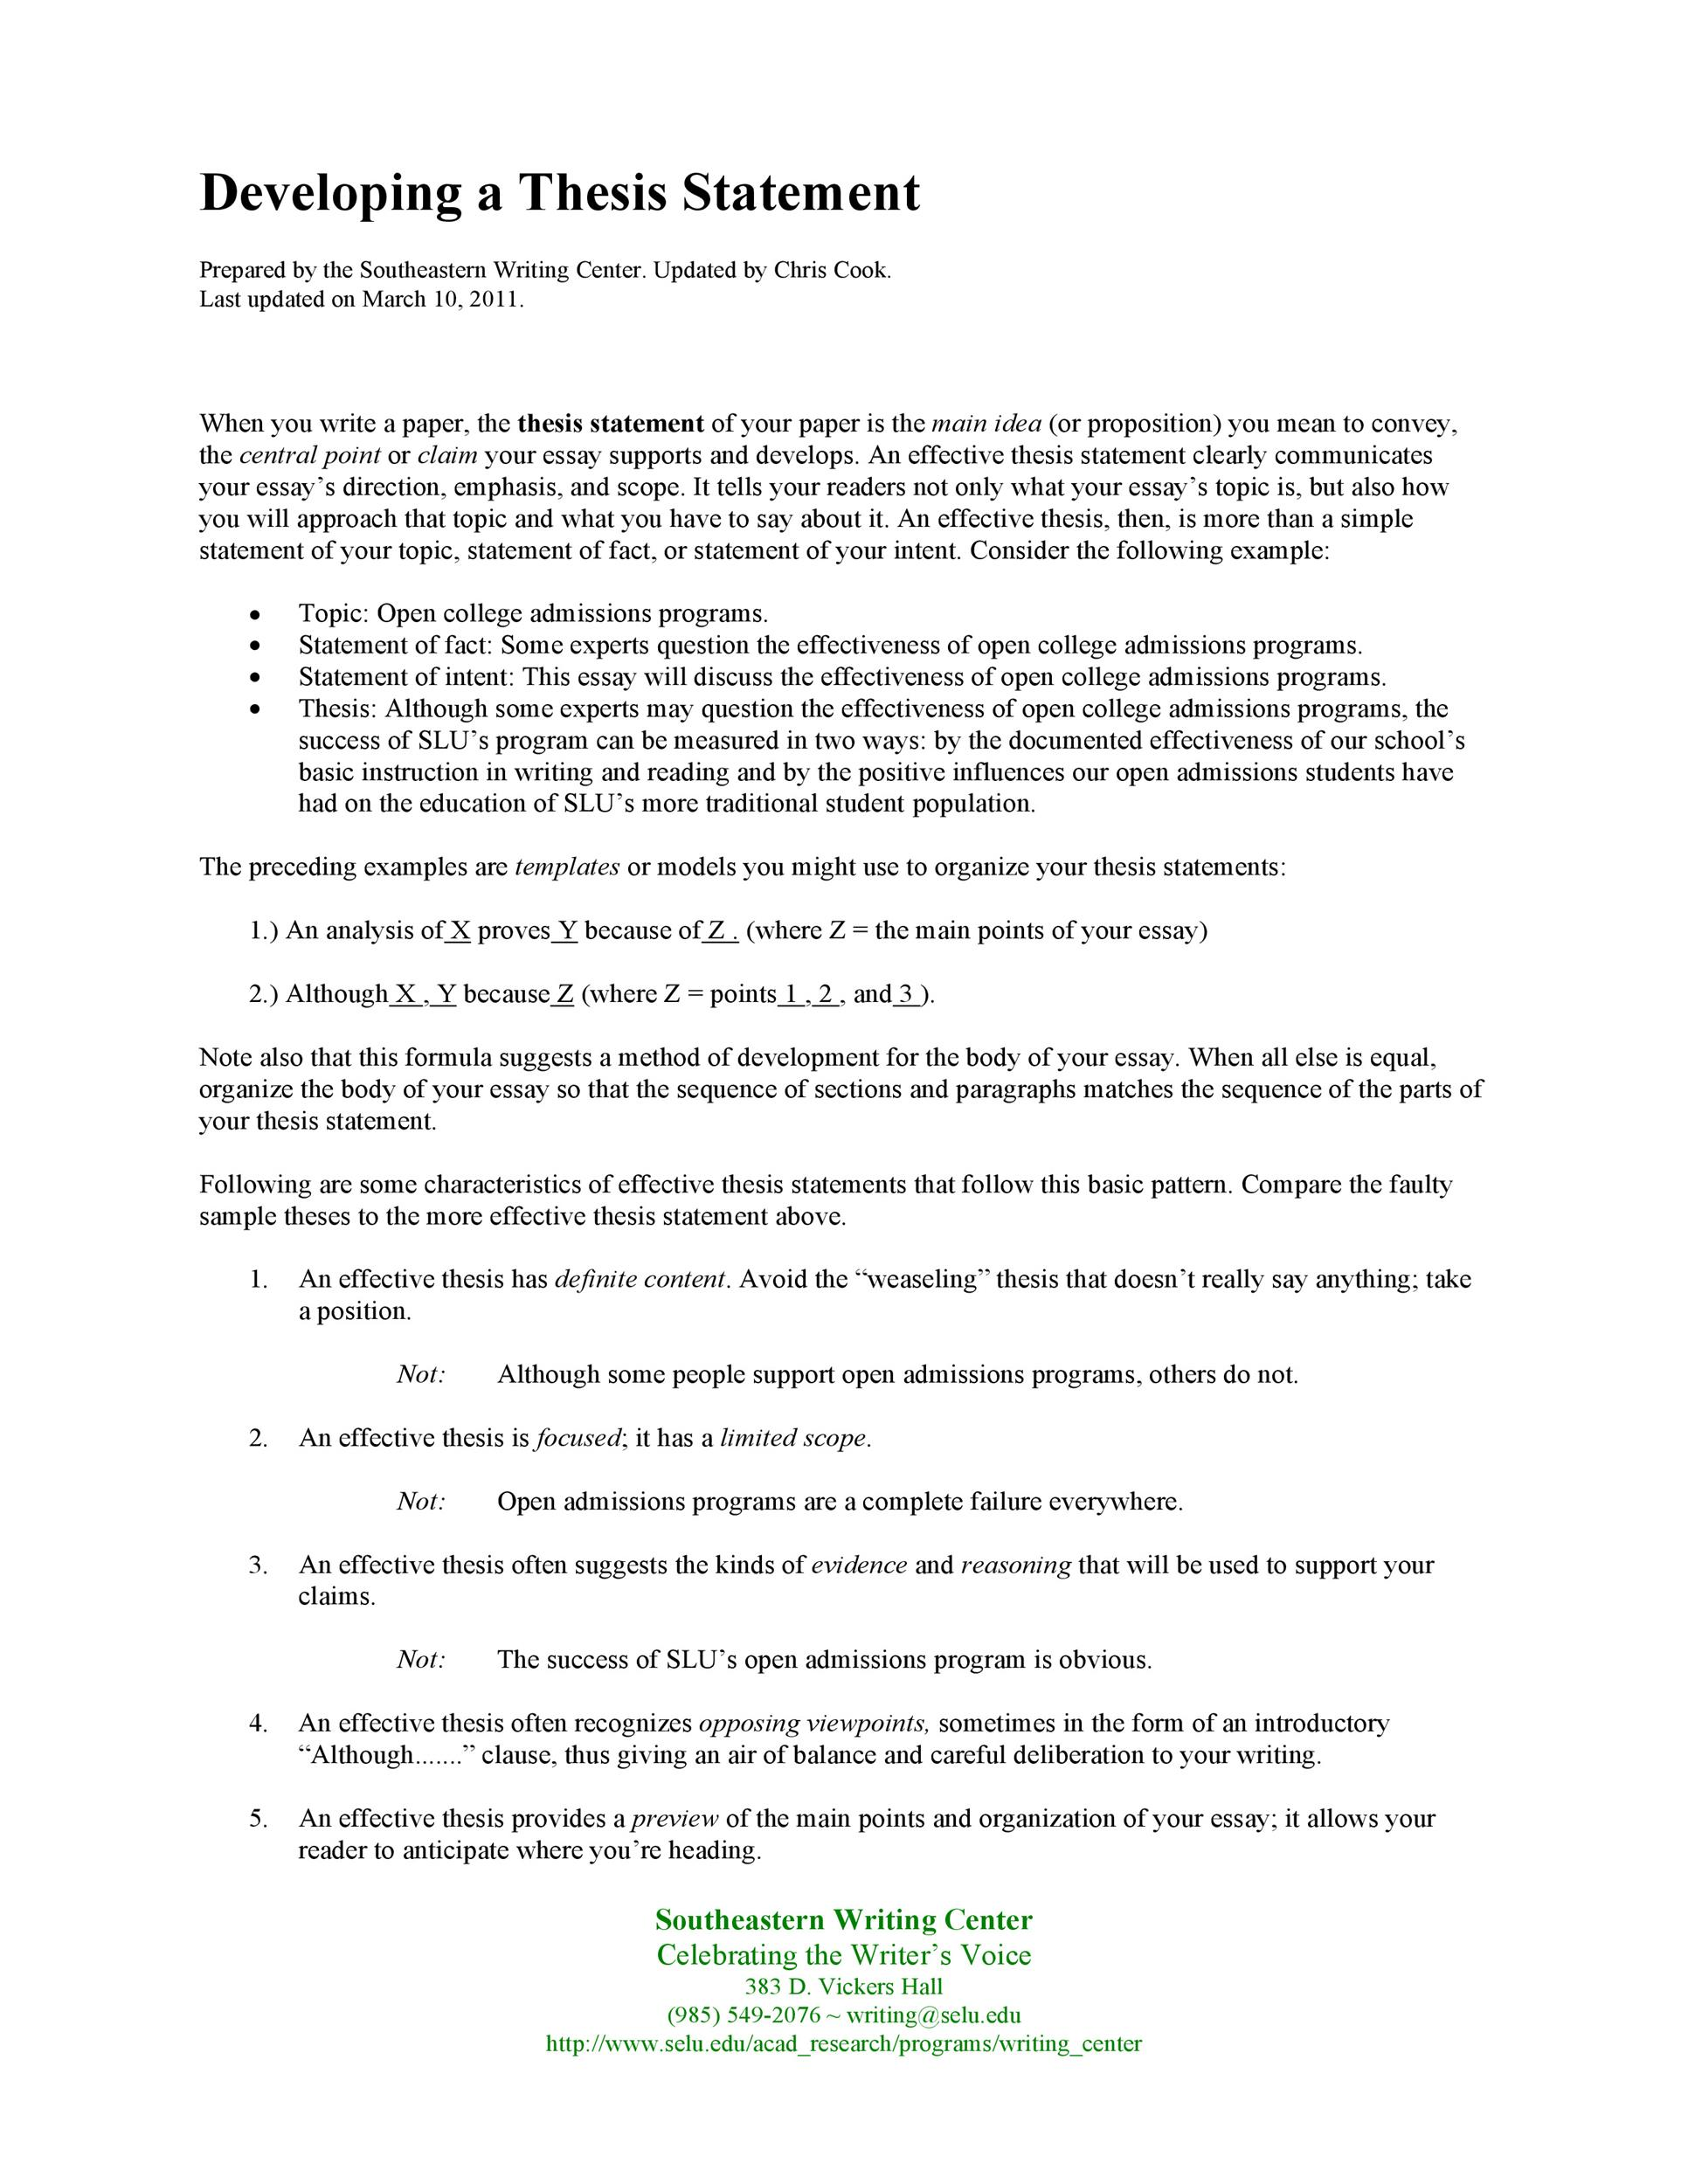 Free thesis statement template 15